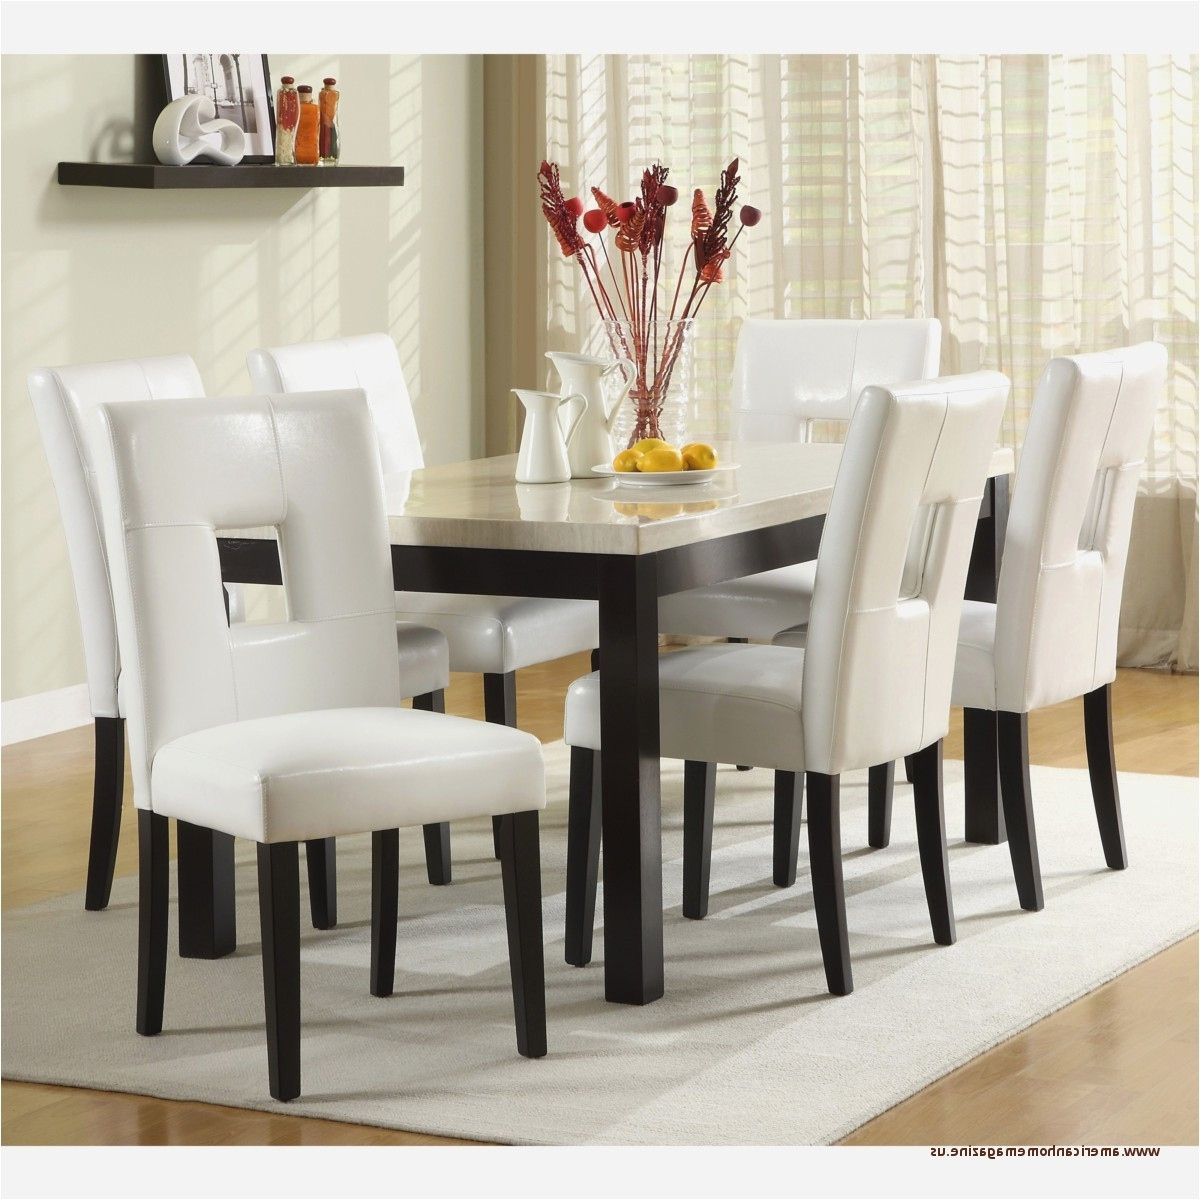 Well Known 6 Dining Room Chairs Ebay Modern Upholstered Dining Chairs Simple In Pertaining To Ebay Dining Chairs (View 15 of 25)